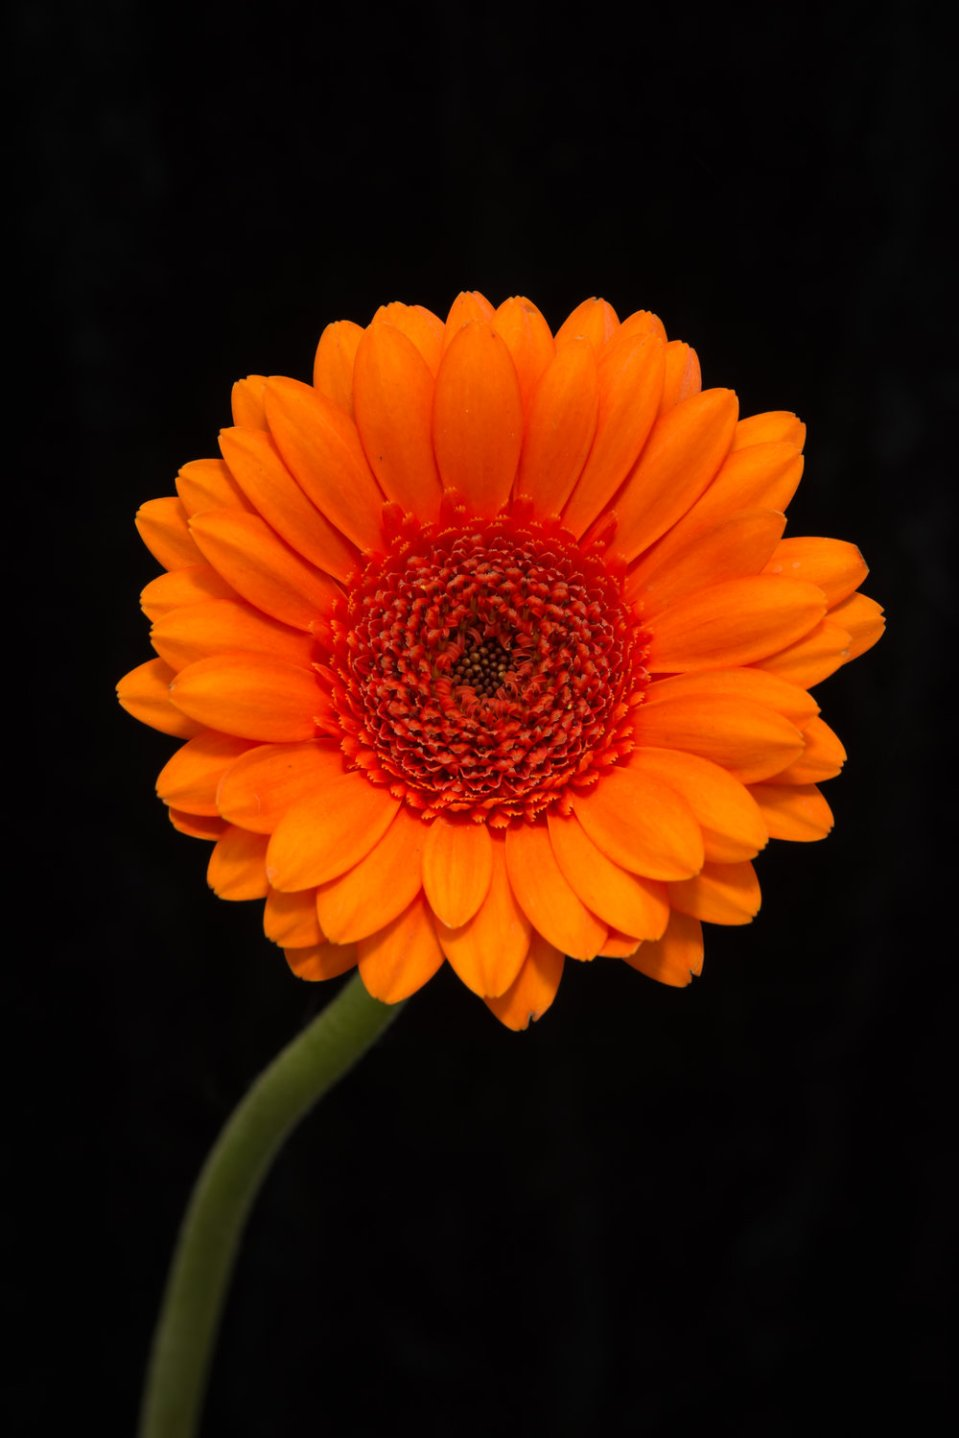 Head and stem of bright orange gerbera